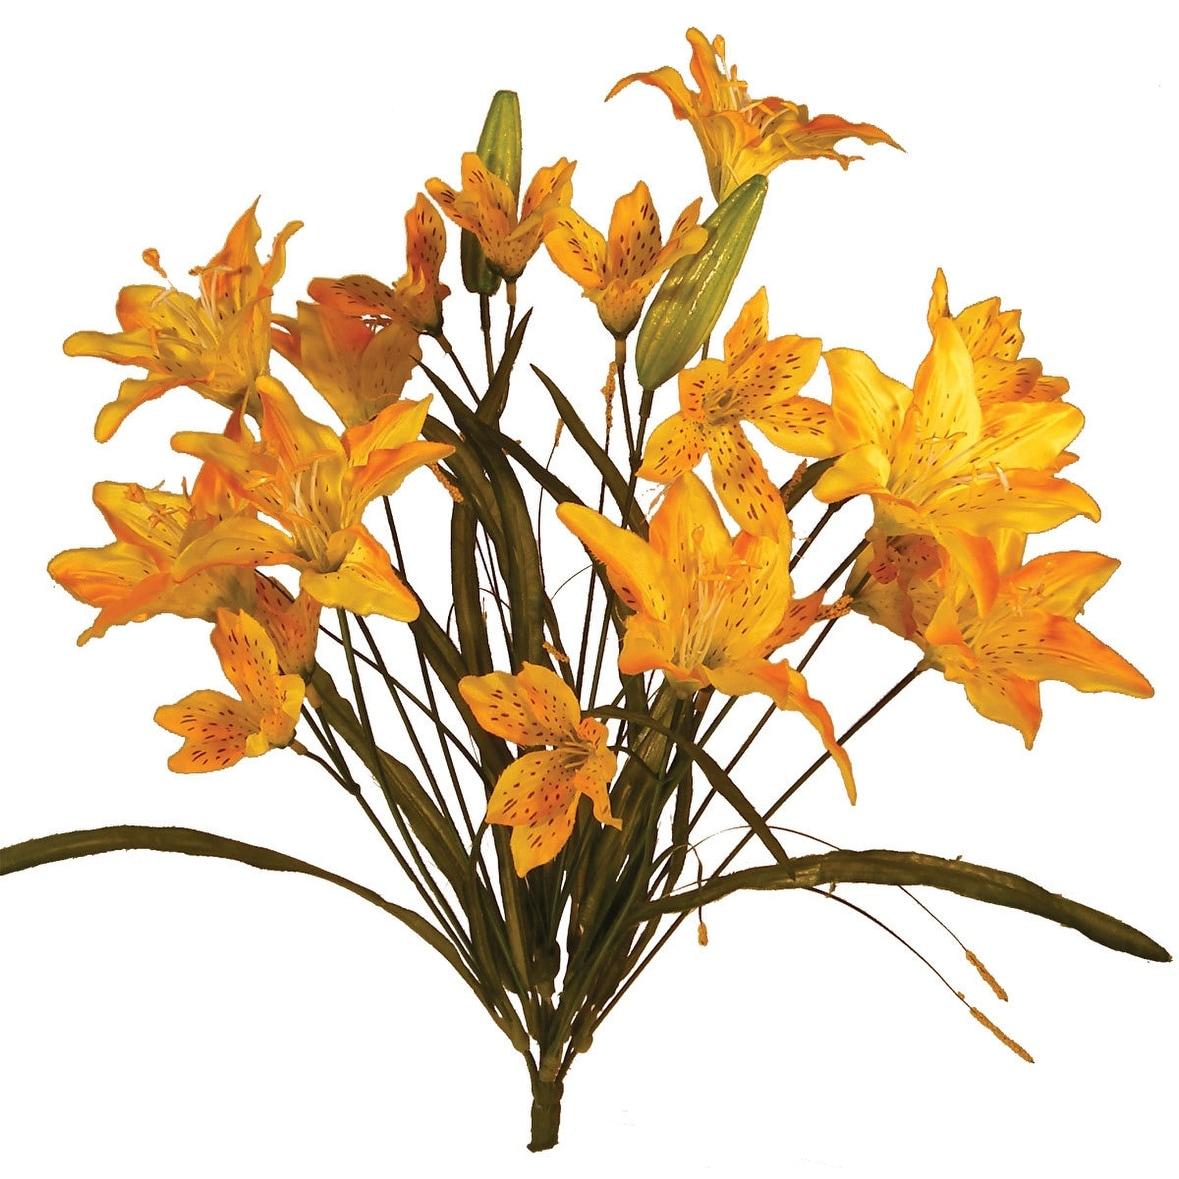 1 pc 21 inch artificial tiger lily bush w12 blooms for seasonal 1 pc 21 inch artificial tiger lily bush w12 blooms for seasonal home decor golden yellow free shipping on orders over 45 overstock 24846650 izmirmasajfo